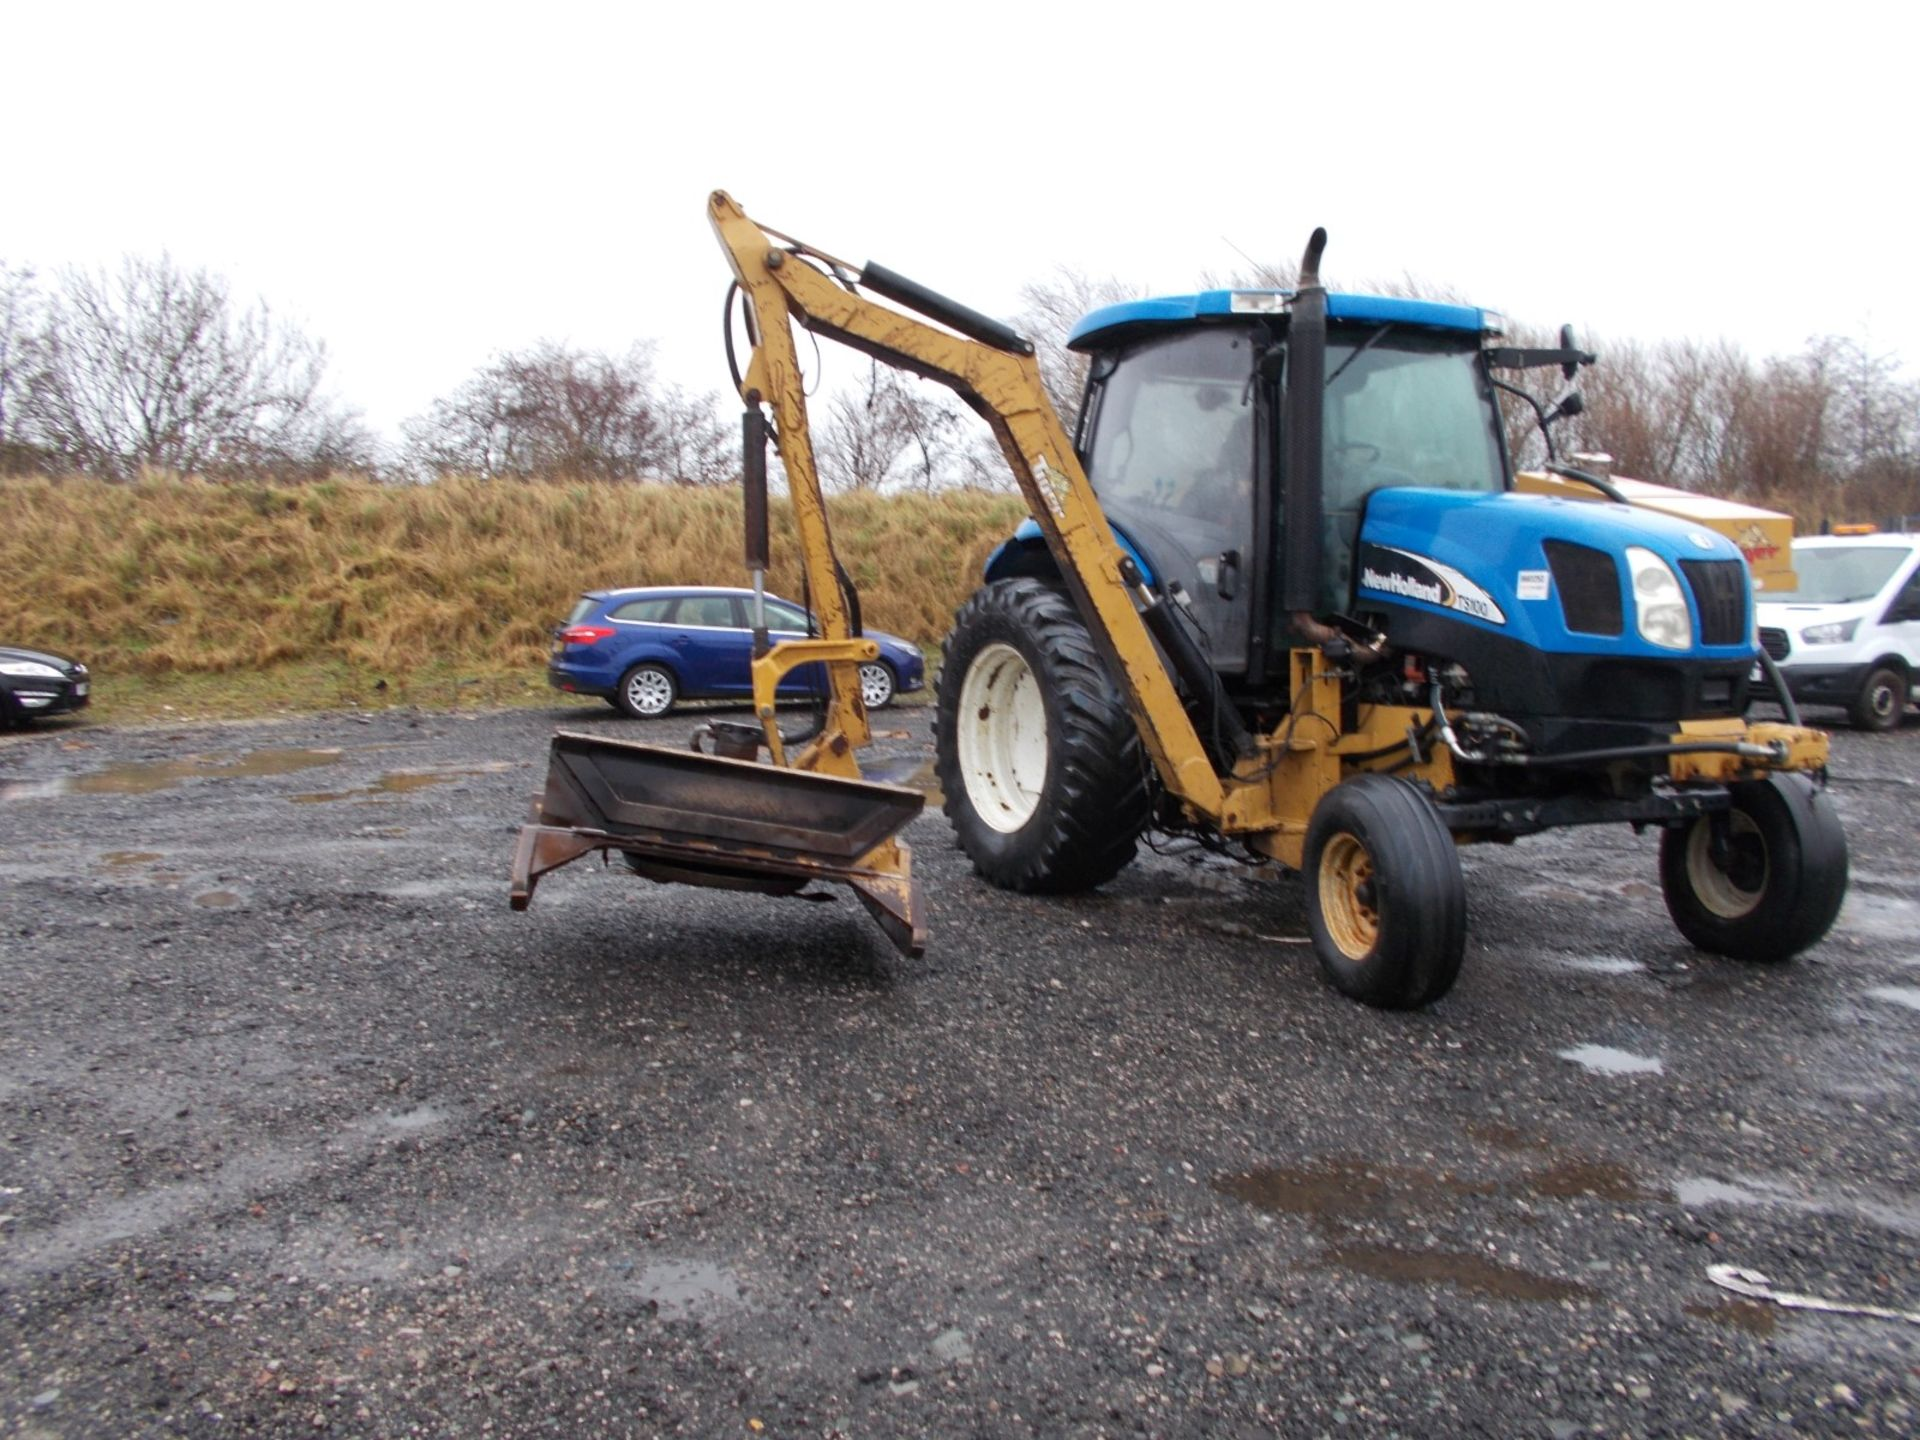 2003 NEW HOLLAND TS100A TRACTOR WITH MOWER ATTACHMENT, 4.5 LITRE 100HP TURBO DIESEL *PLUS VAT* - Image 10 of 24